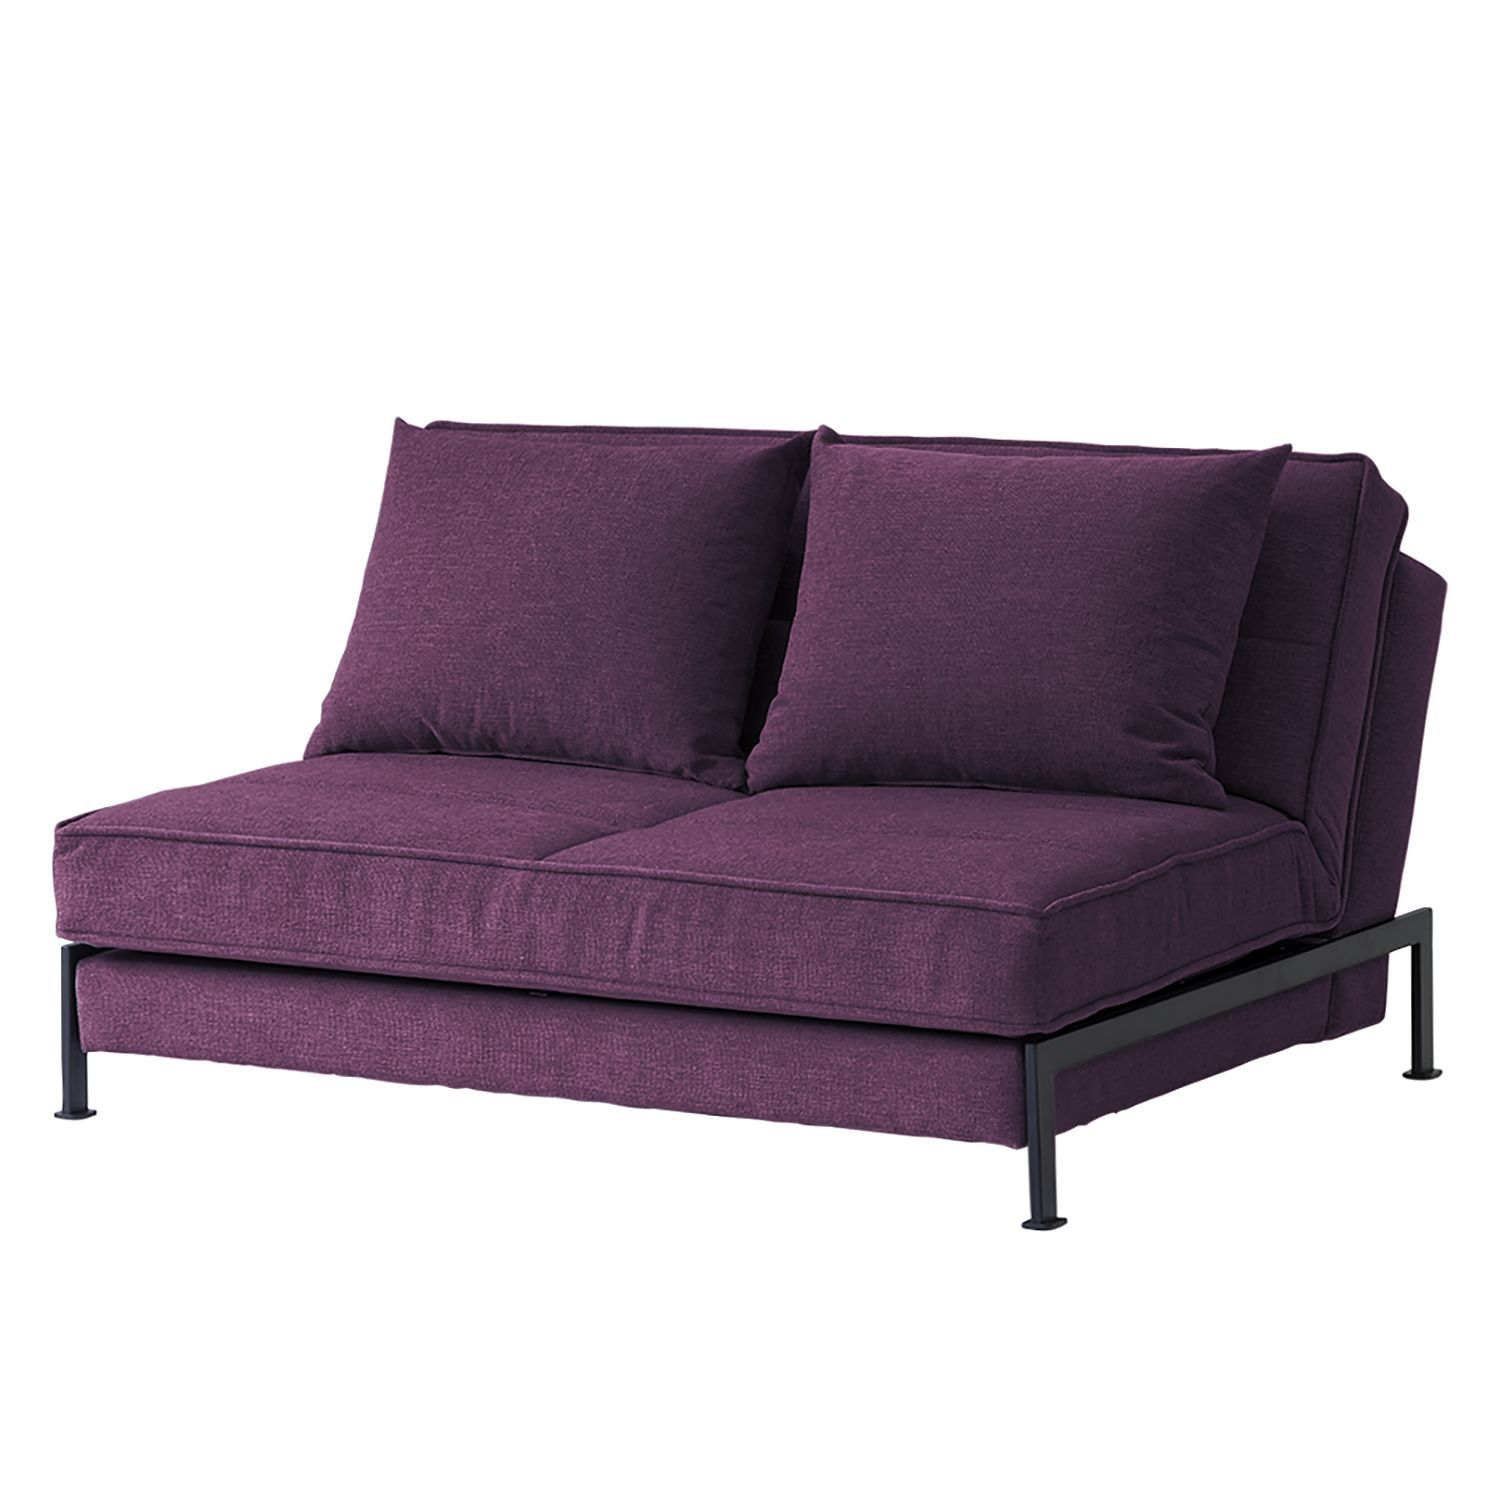 Neckermann Schlafsofas Schlafsofa Filius In 2019 Sofas Sofa Furniture Sofa Und Furniture